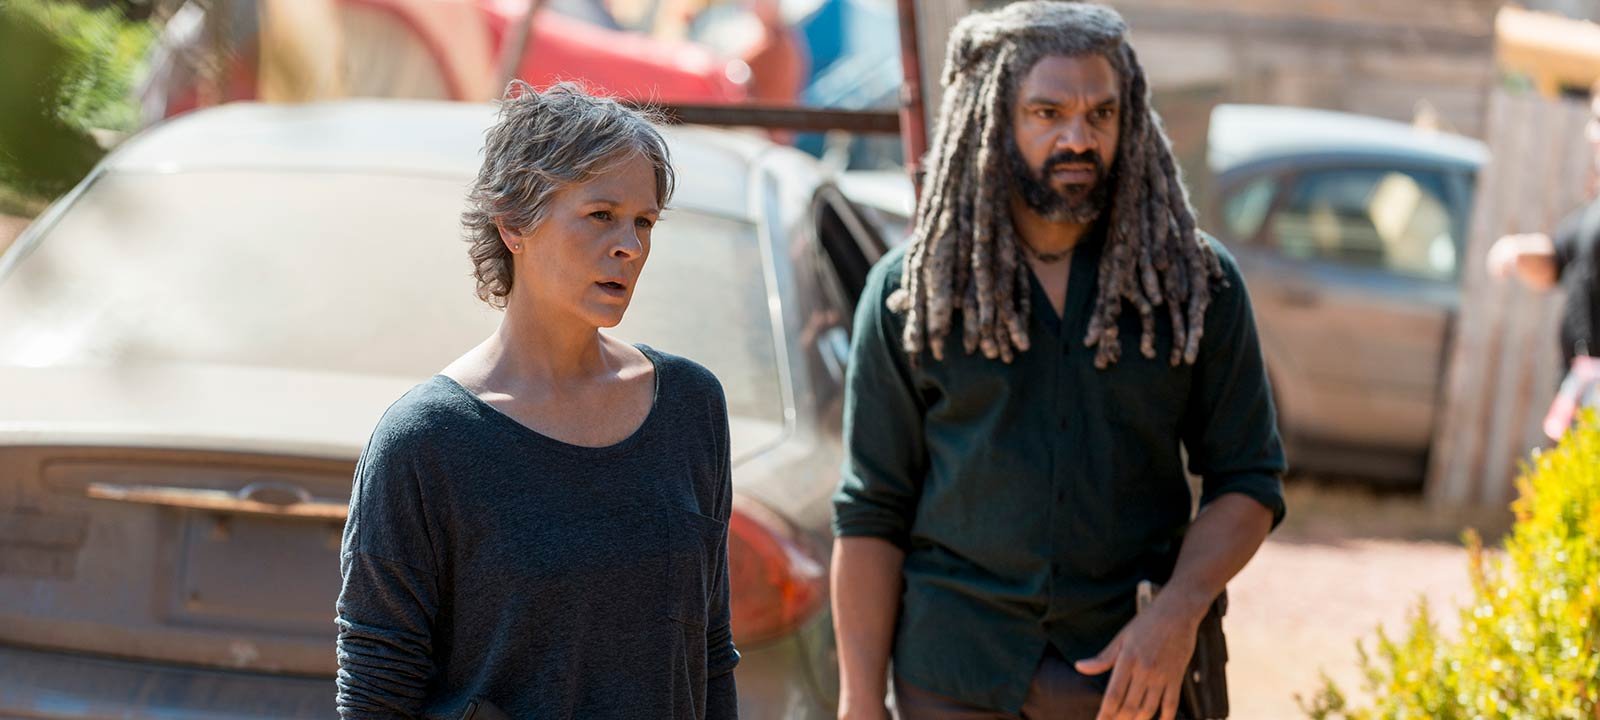 the-walking-dead-episode-813-carol-mcbride-ezekiel-payton-800×600-interview